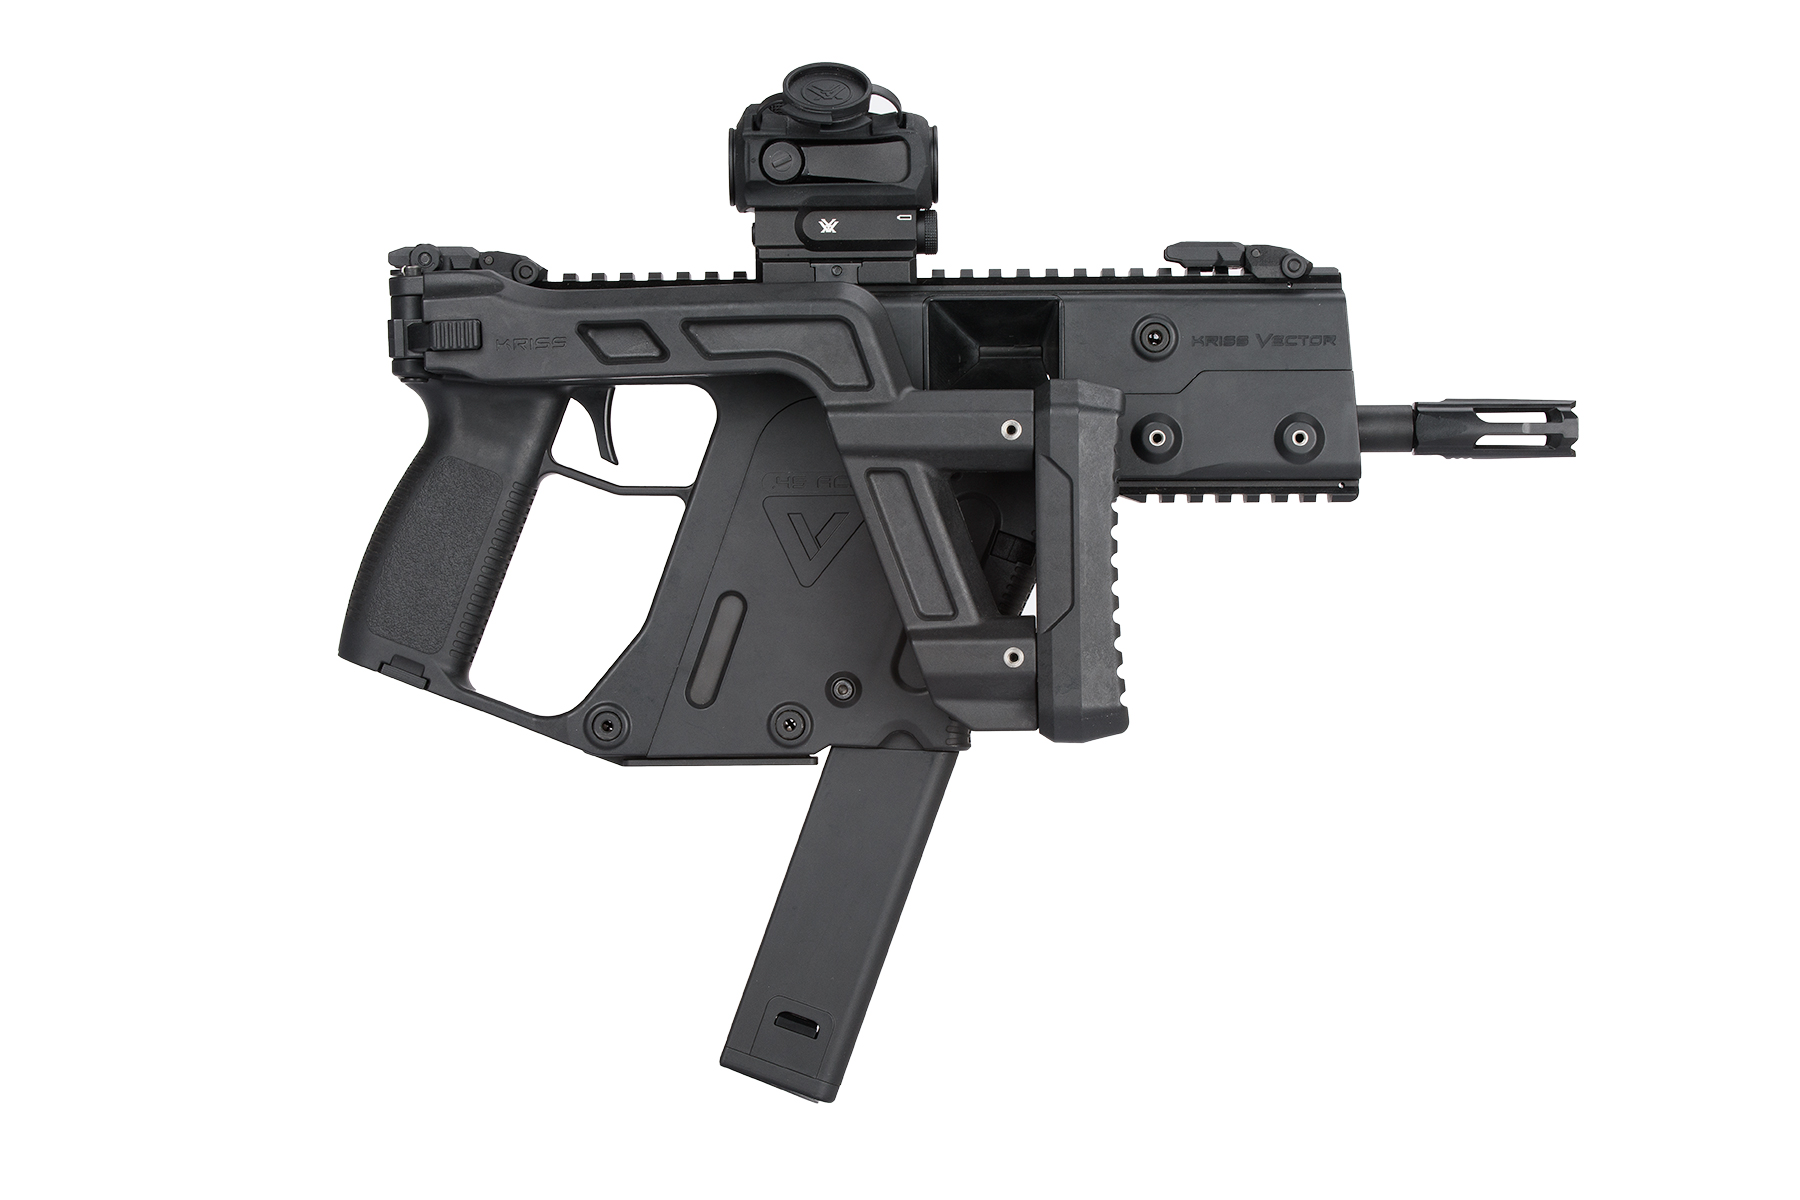 1800x1200 Krytac Airsoft Kriss Vector Aeg Gen 2 Aeg Rifle